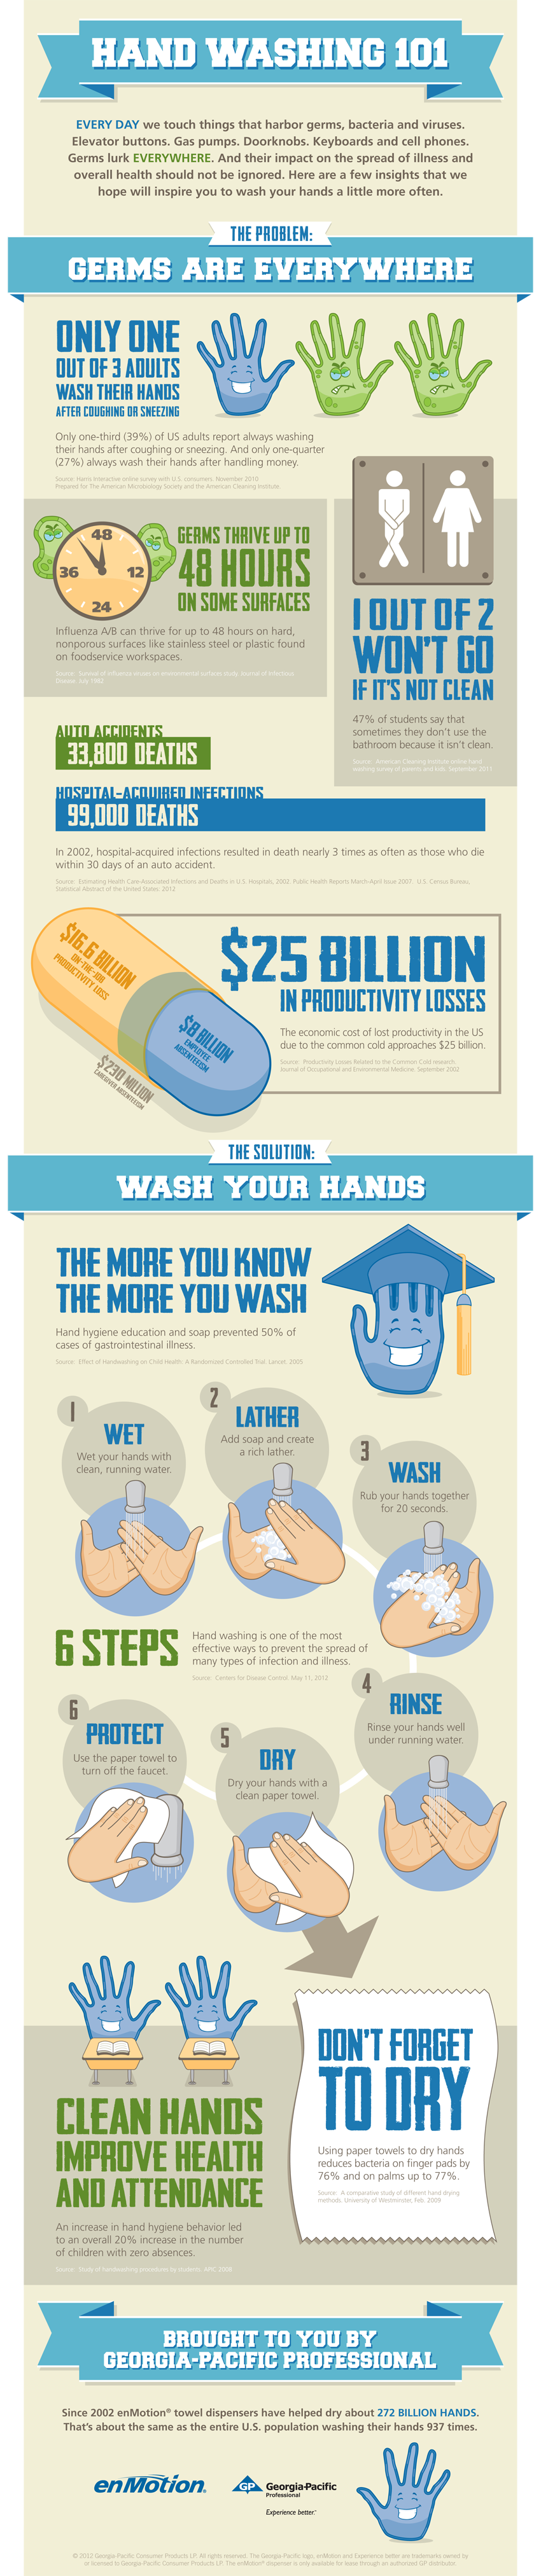 Handwashing infographic provided by our Flu Fighters of the Month.